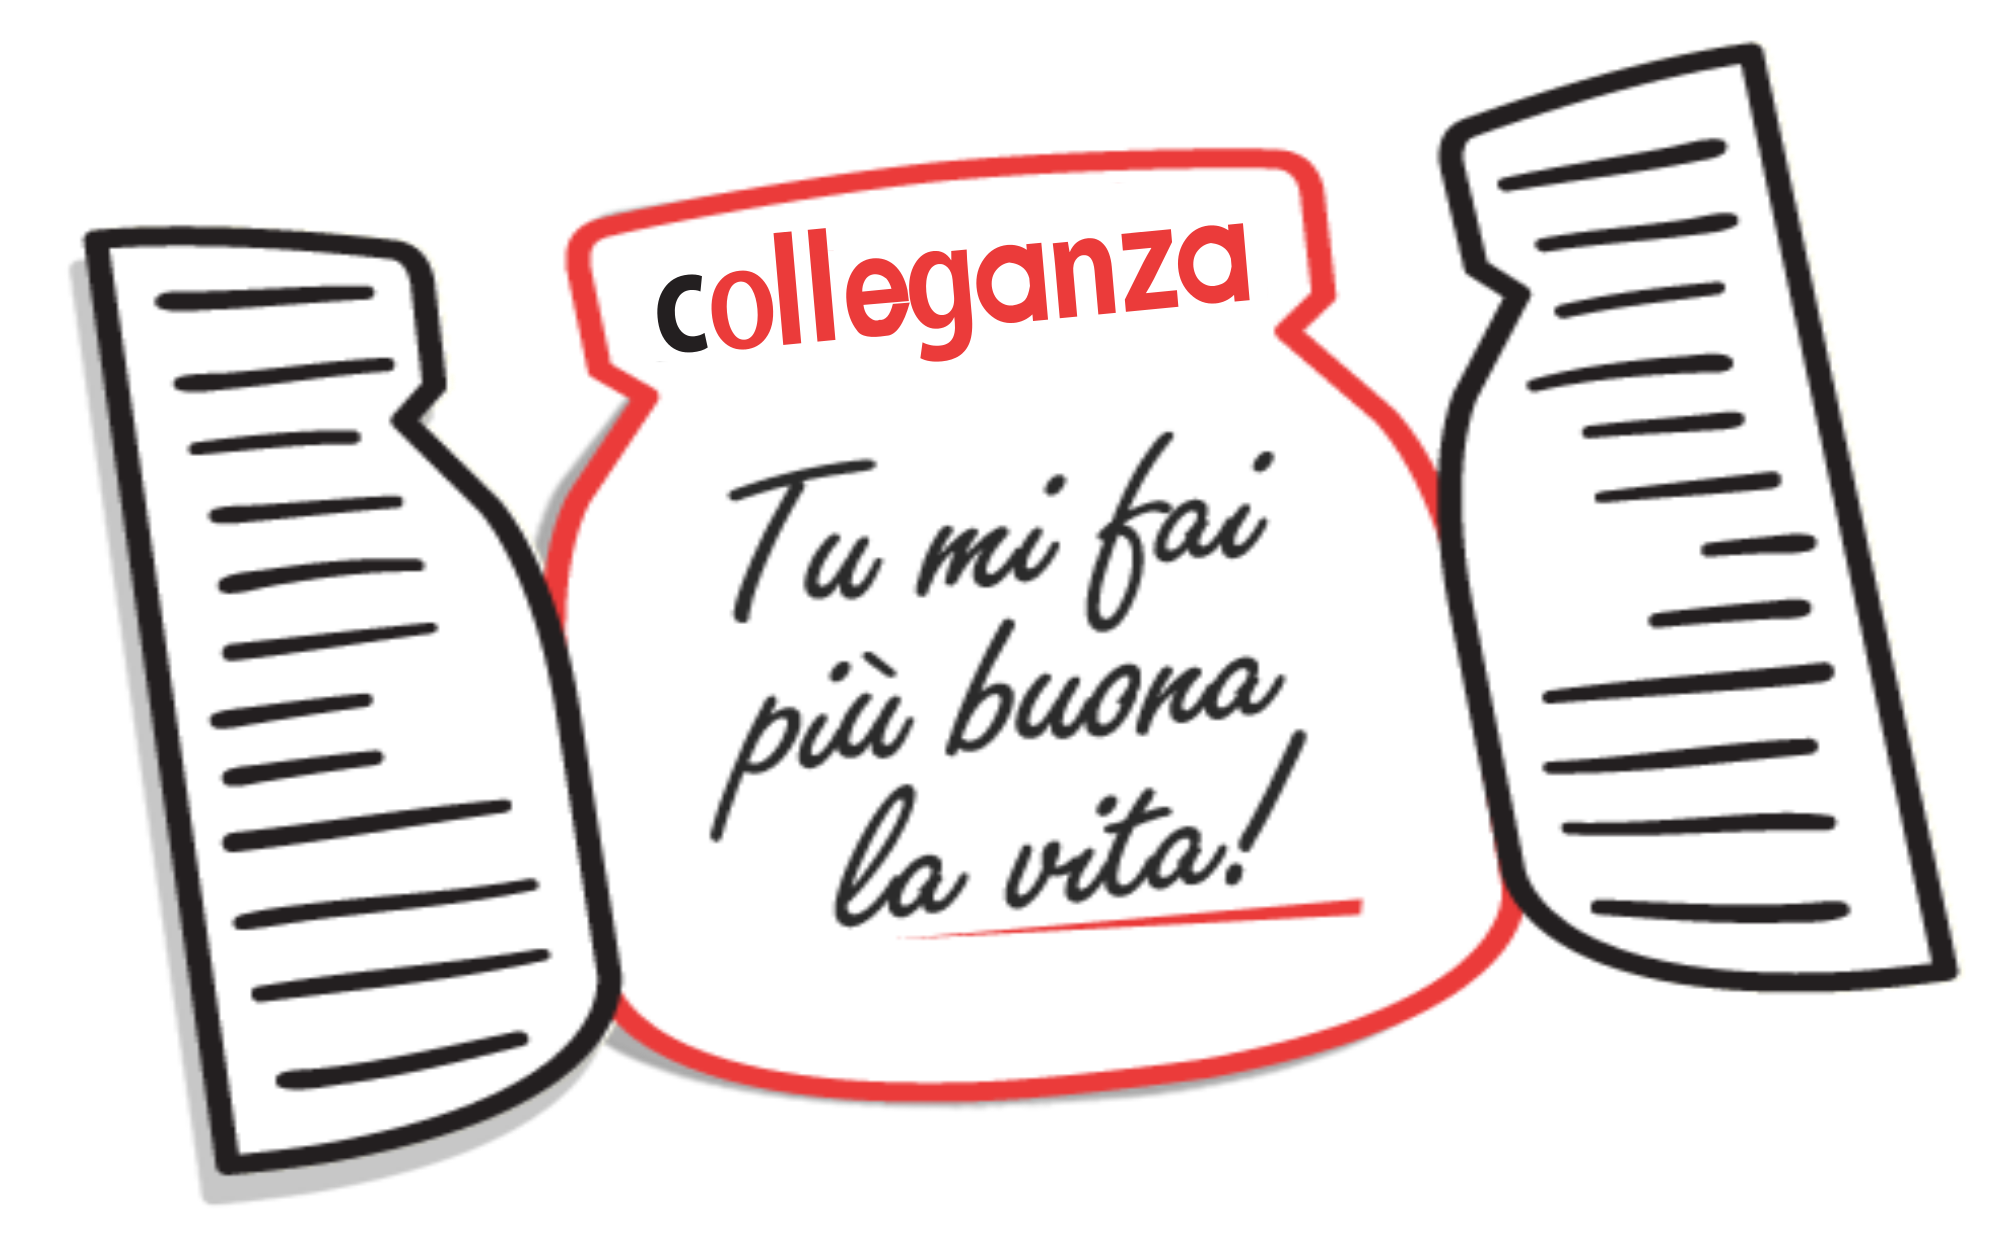 La colleganza come la Nutella